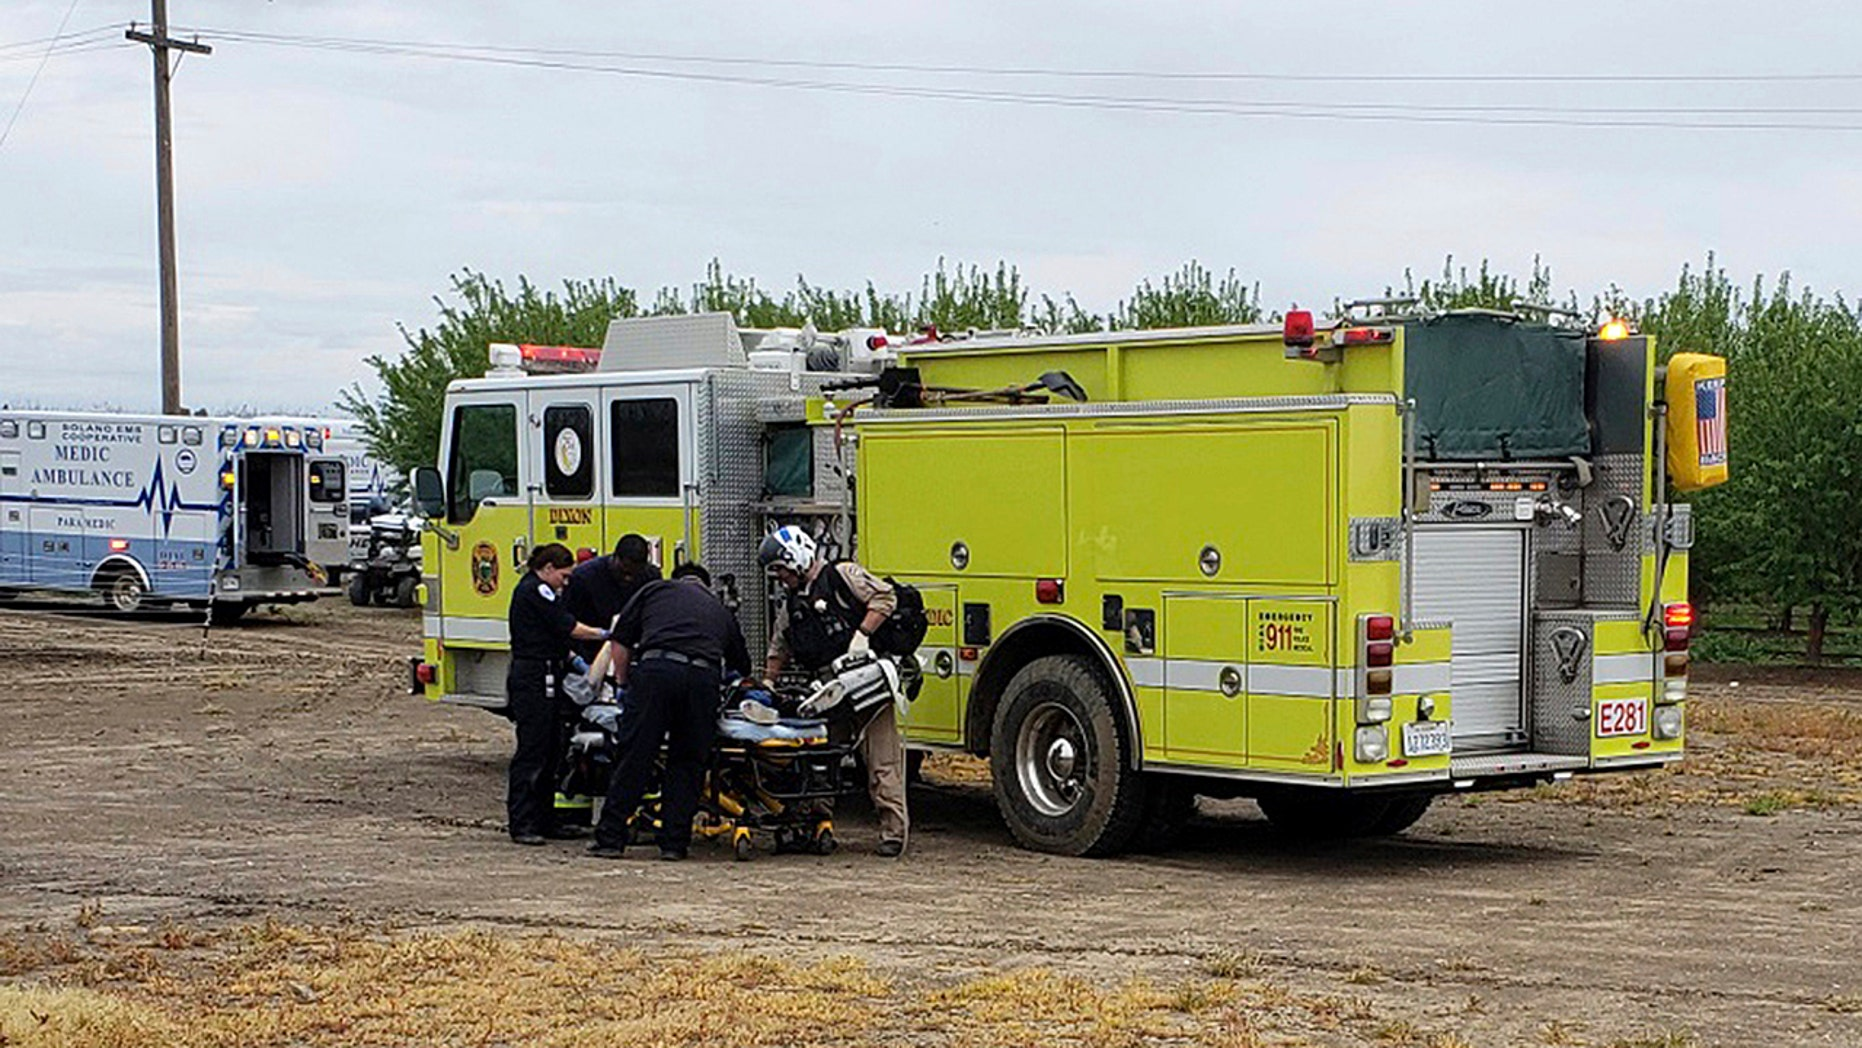 Fire and medical officials attend to one of two teenage boys who were electrocuted while trying to rescue a dog from an irrigation canal at an orchard in Dixon, Calif. (California Highway Patrol/Via AP)